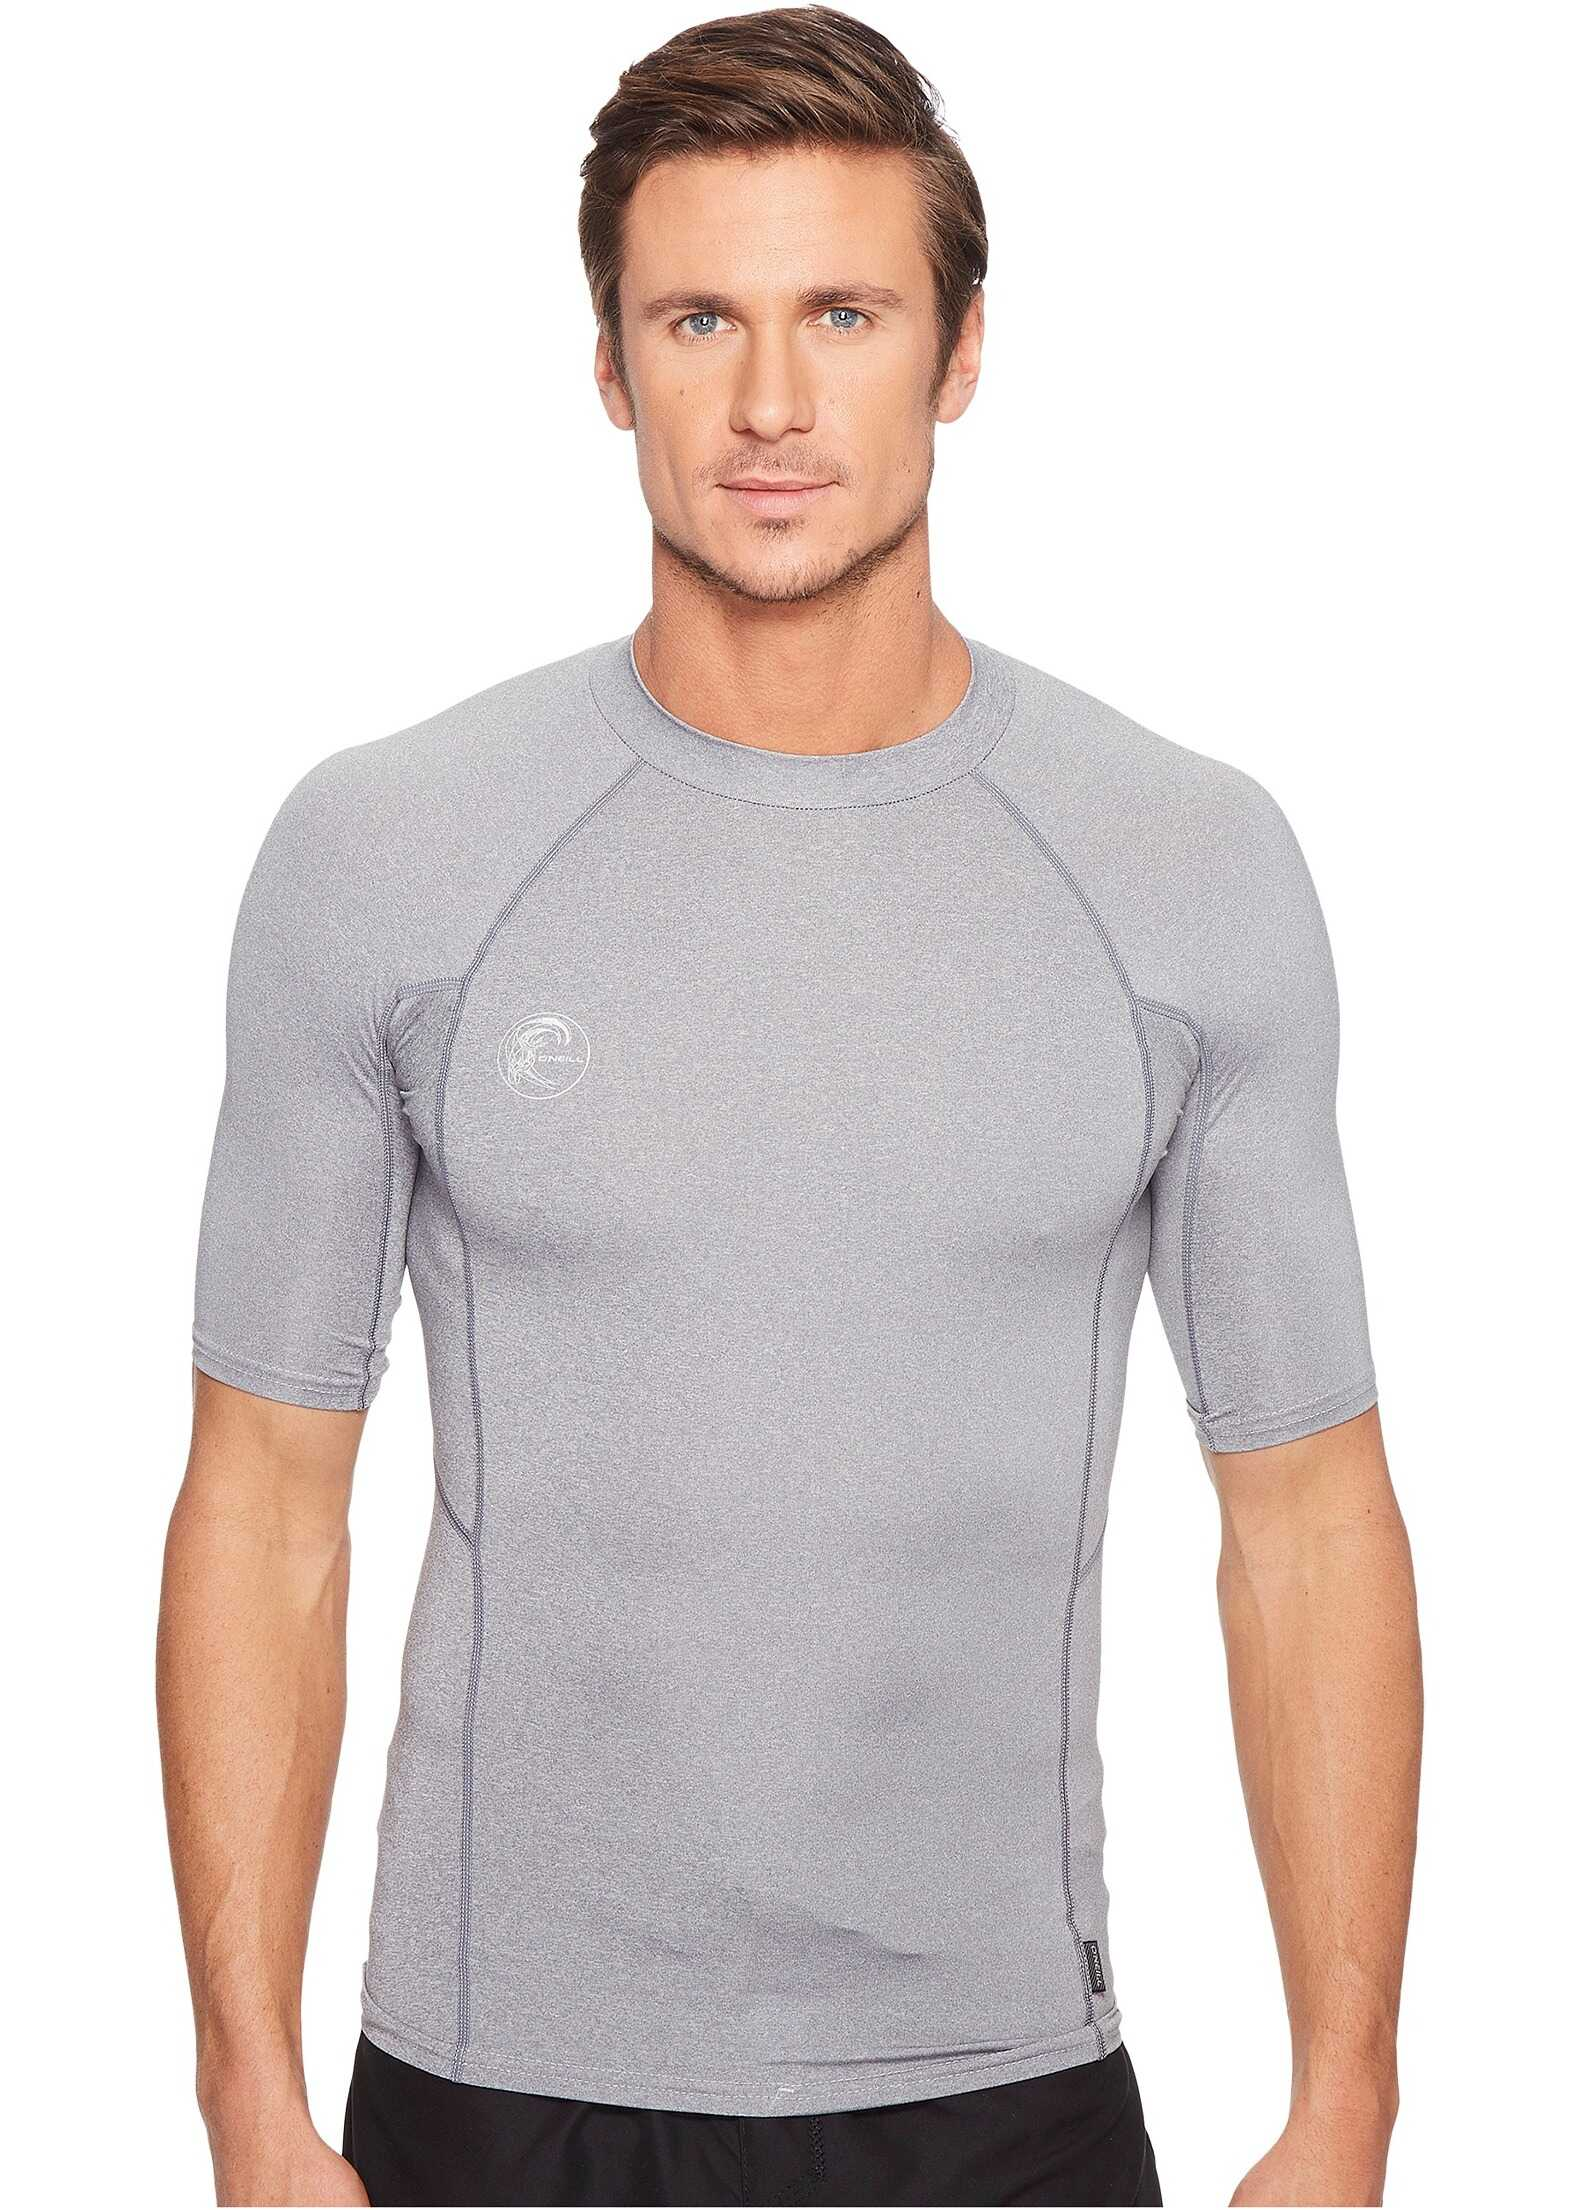 ONeill Hybrid Short Sleeve Crew* Cool Grey